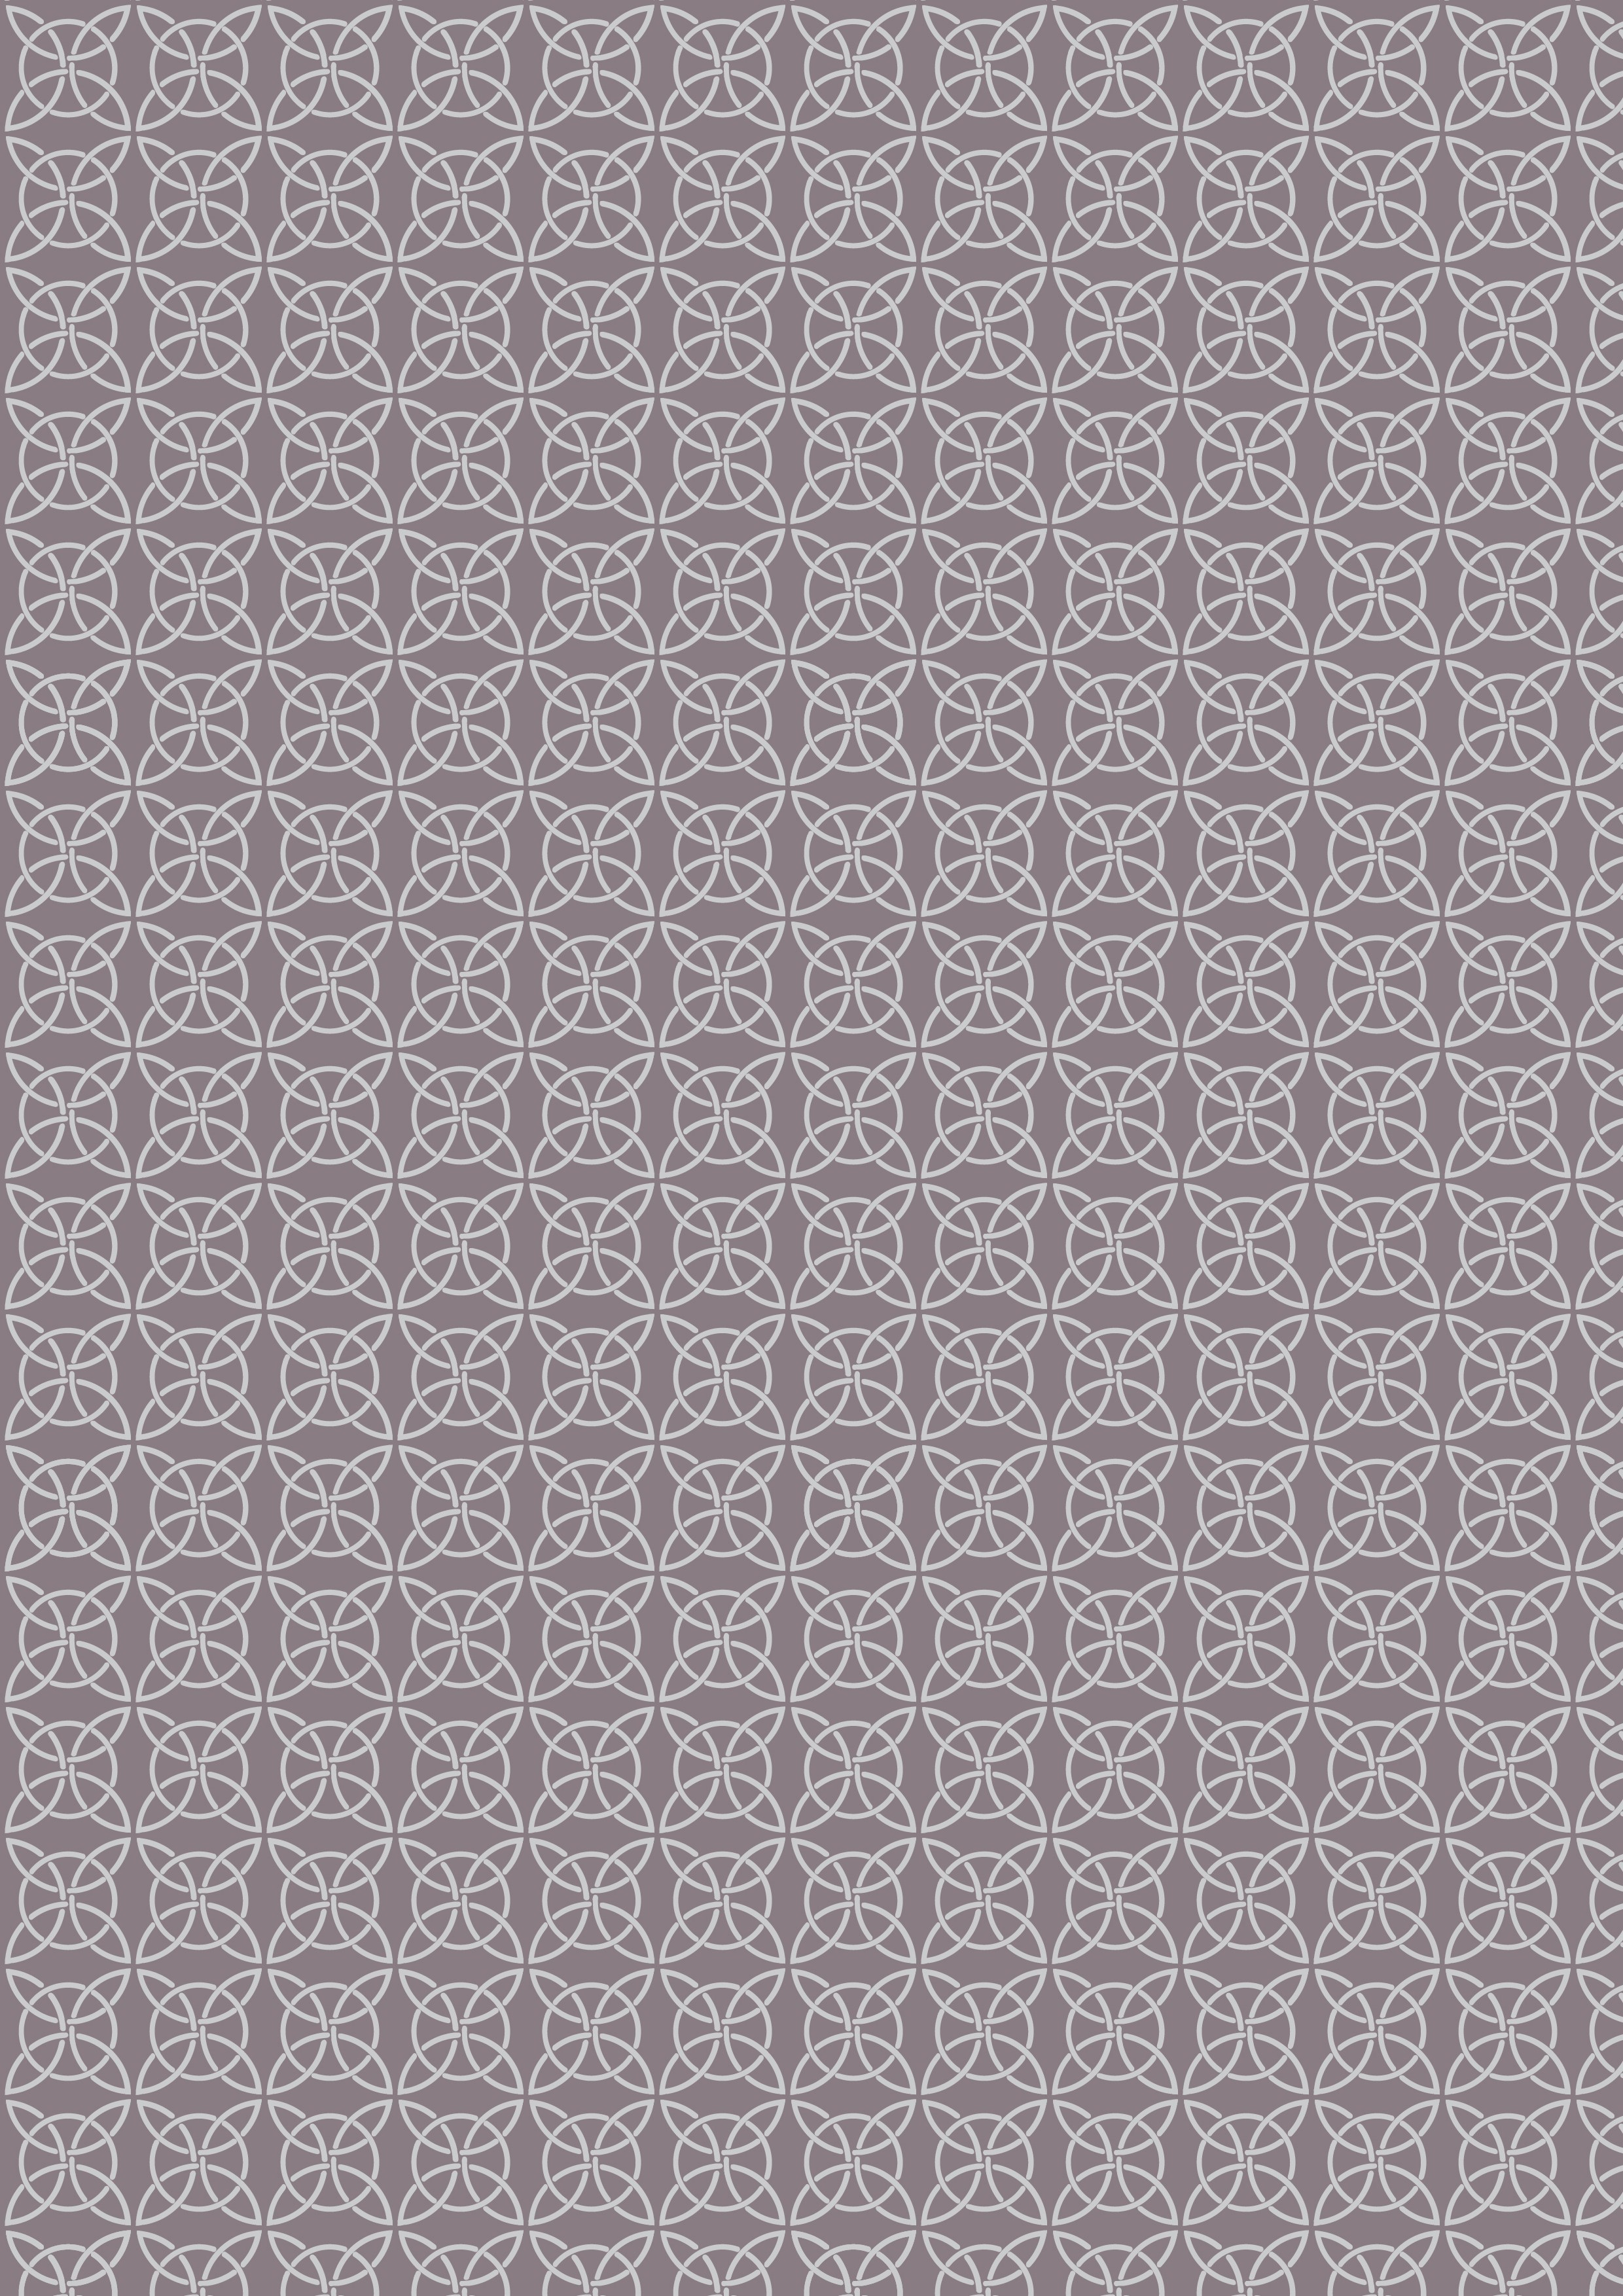 Celtic Knot in Grey and Silver Metallic from the Celtic Reflections collection for Lewis and Irene #A334.2